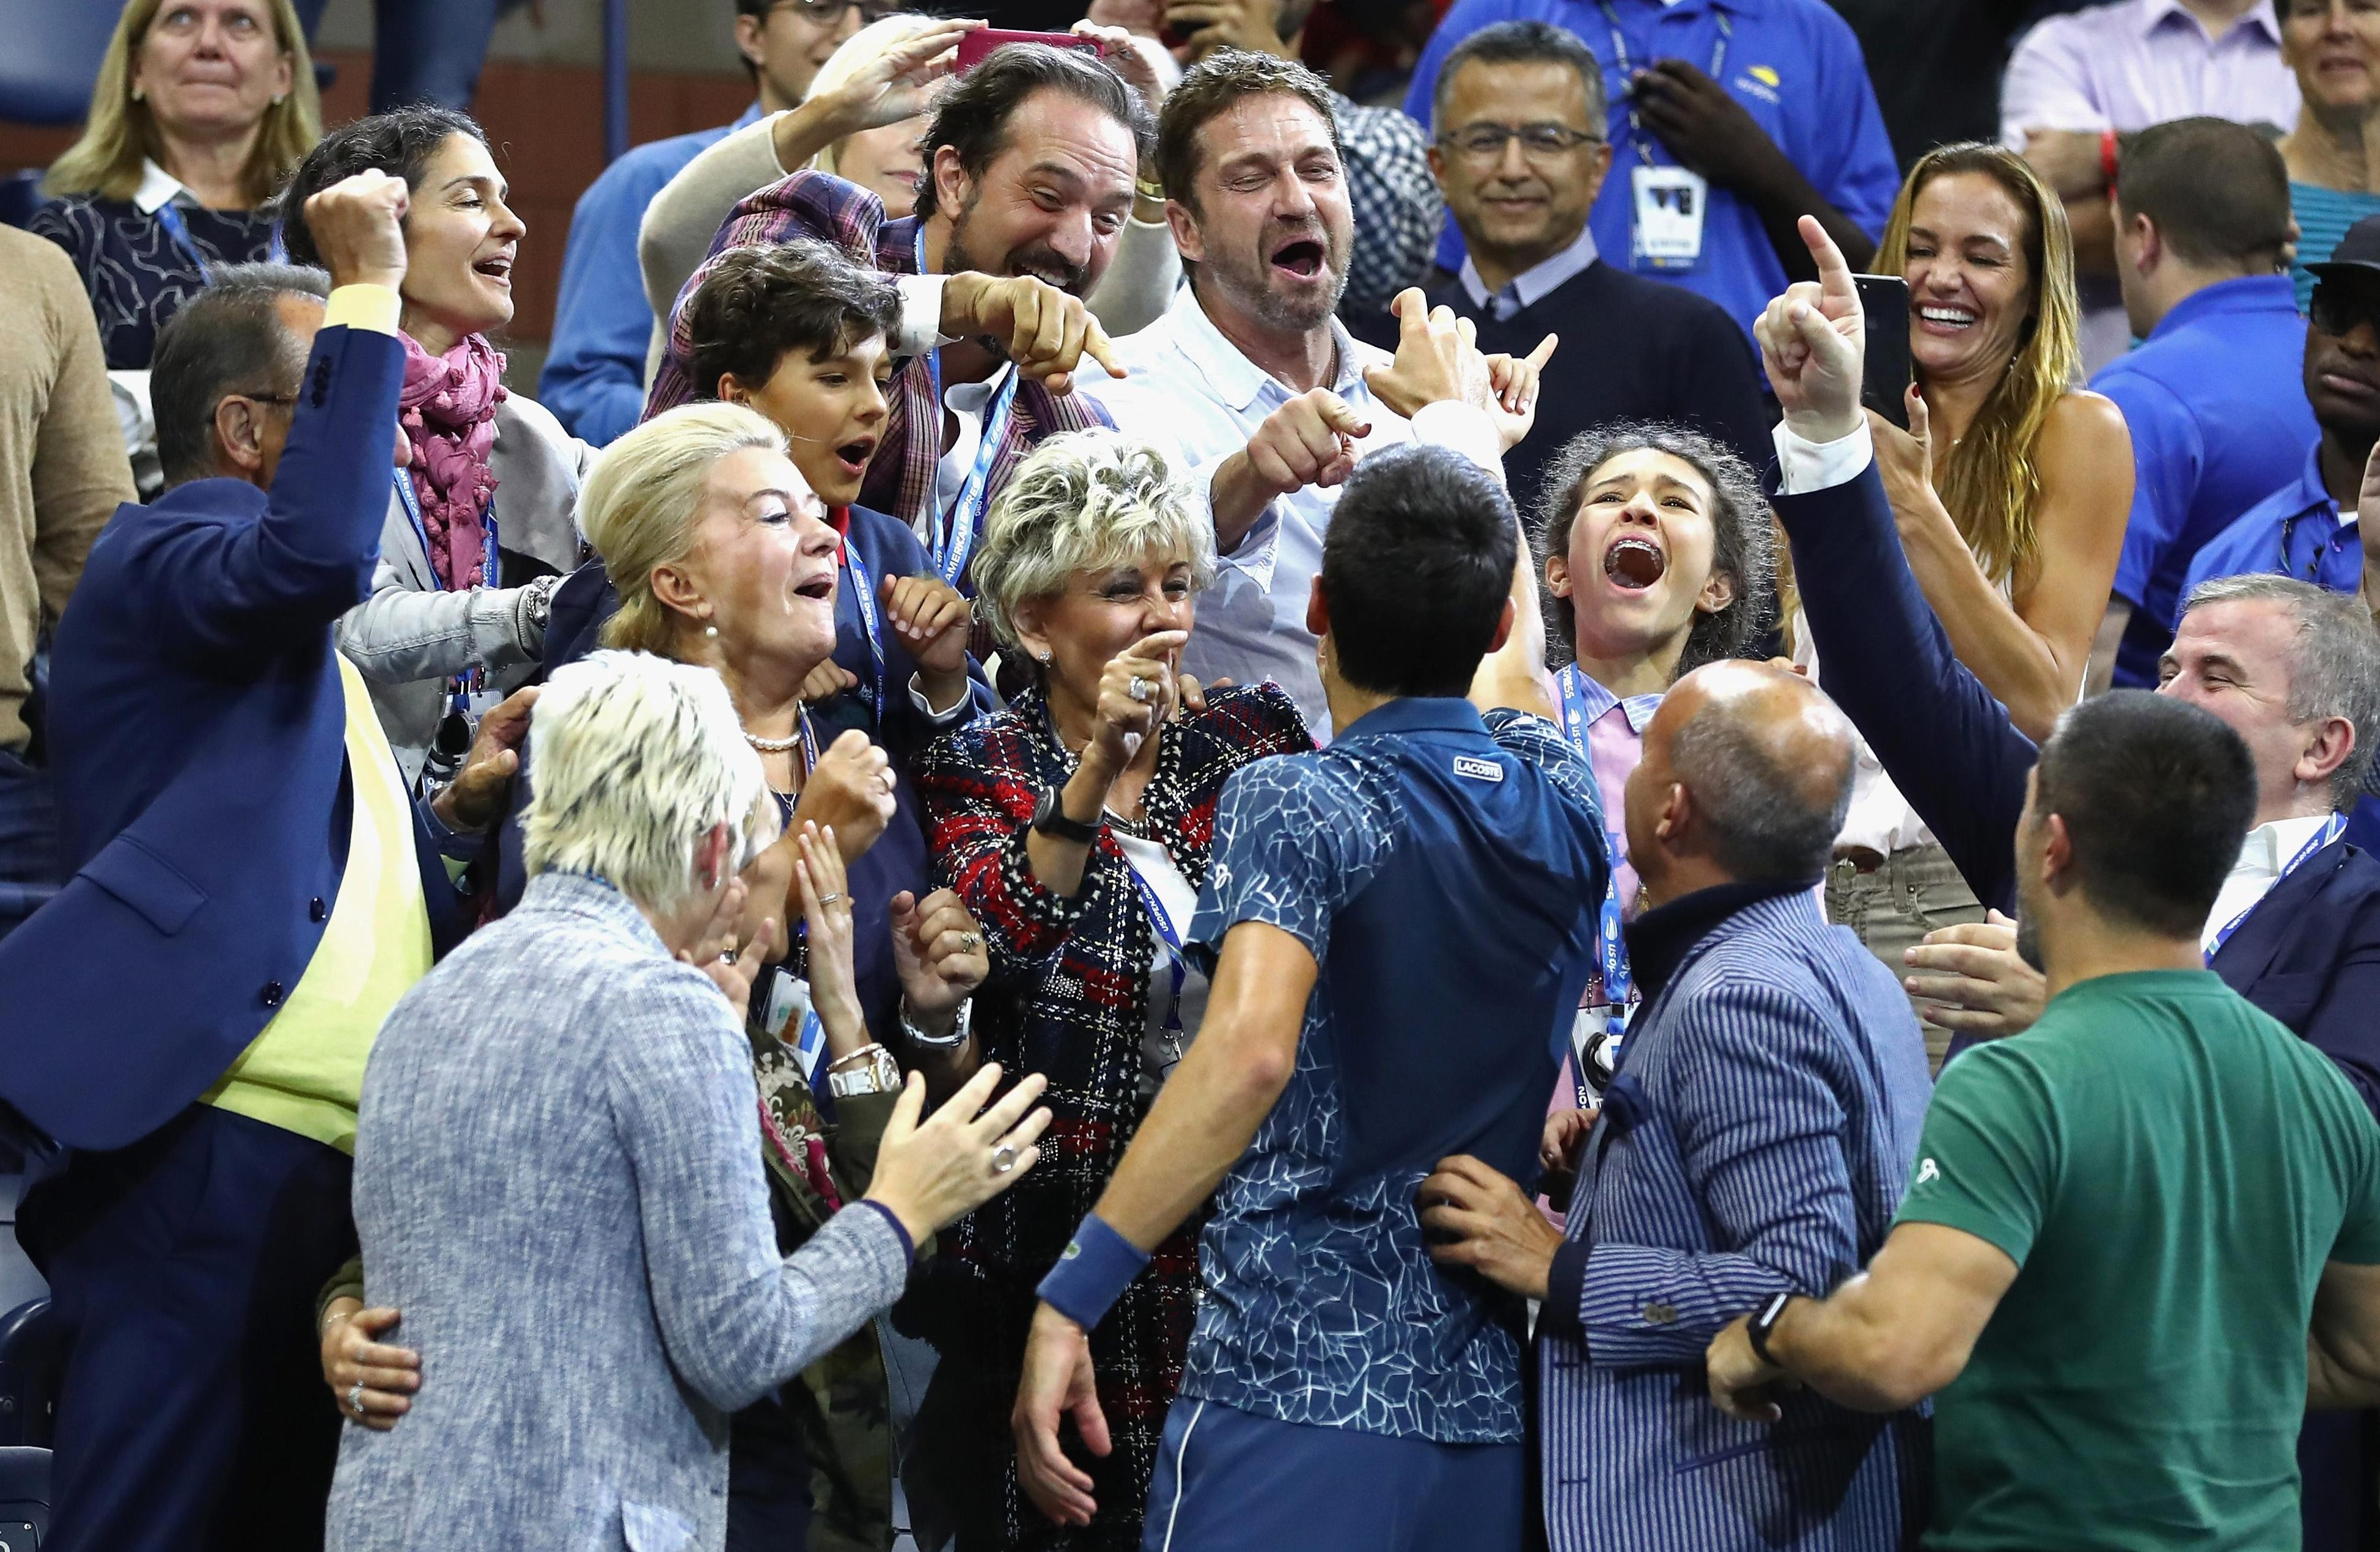 Novak Djokovic is congratulated by Hollywood actor Gerard Butler after winning the US Open